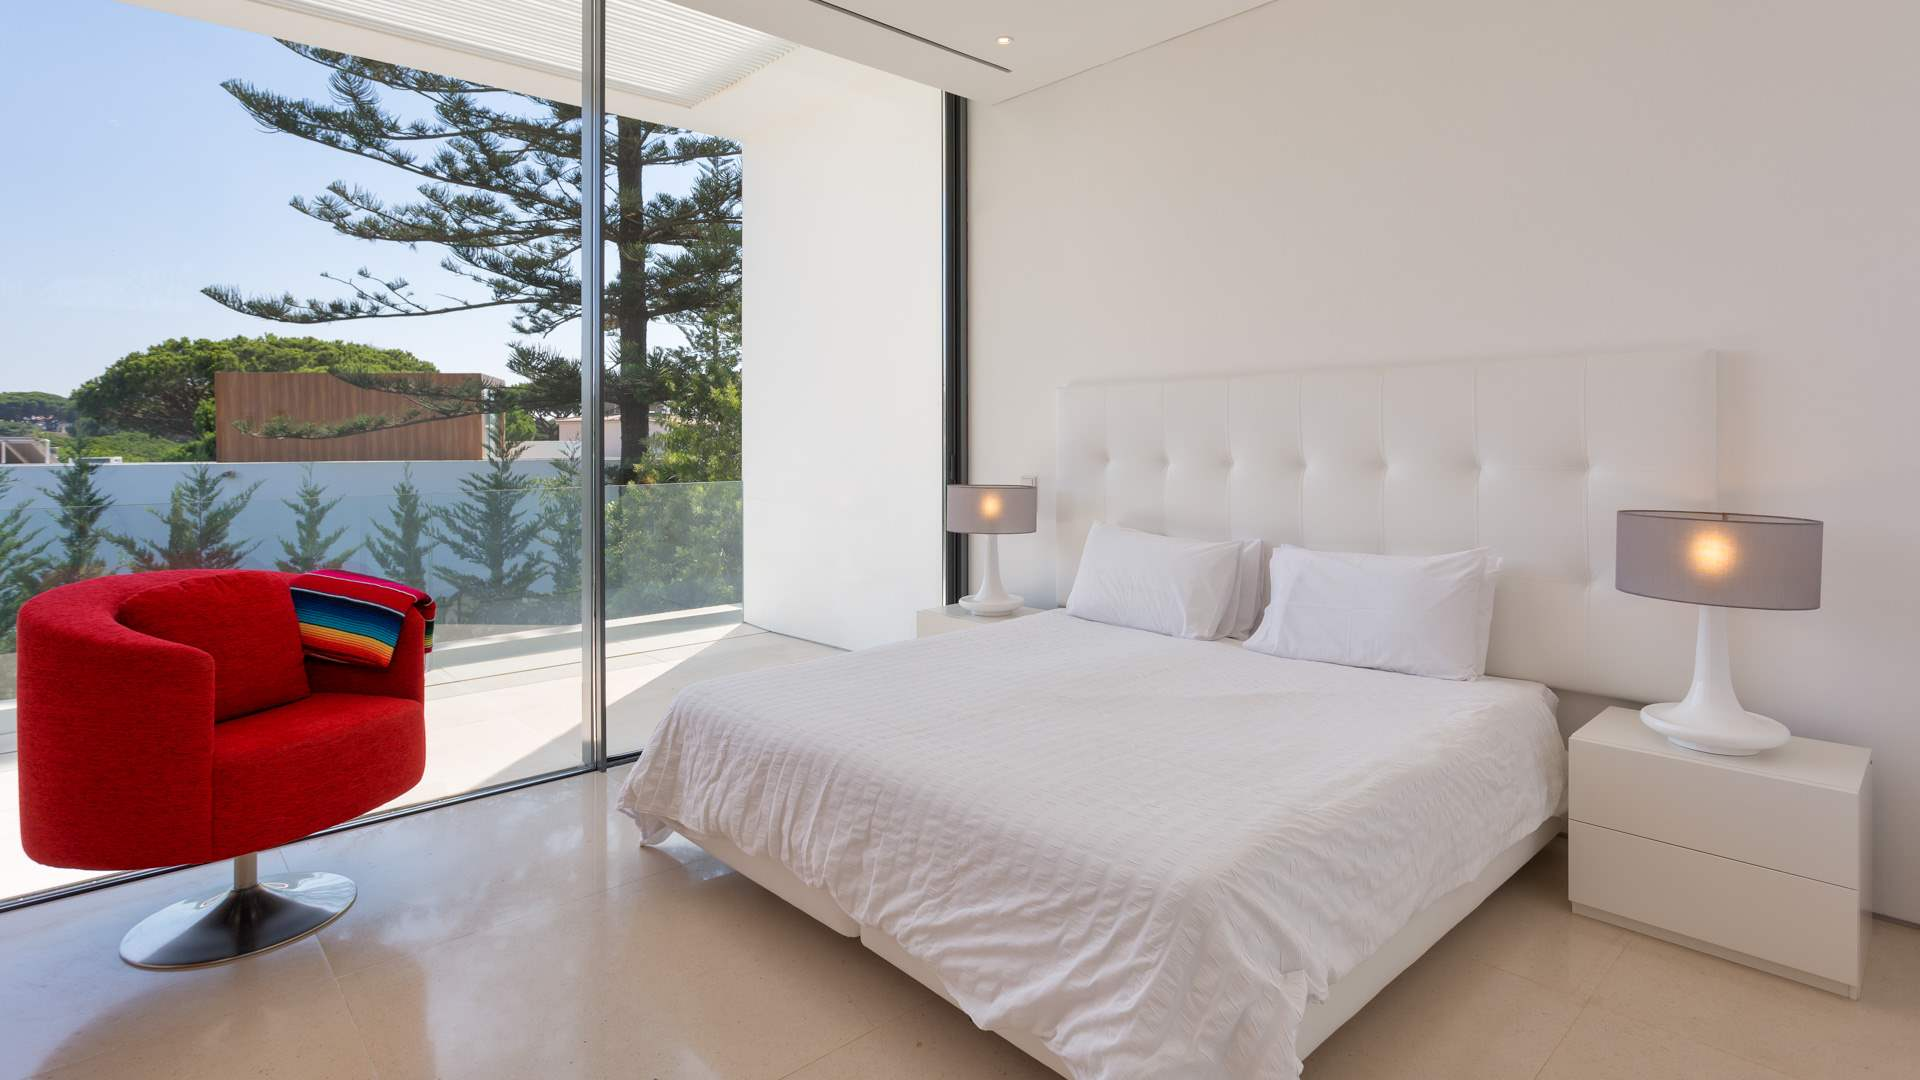 Villa Felicity, 4 bedroom villa in Vale do Lobo, Algarve Photo #21